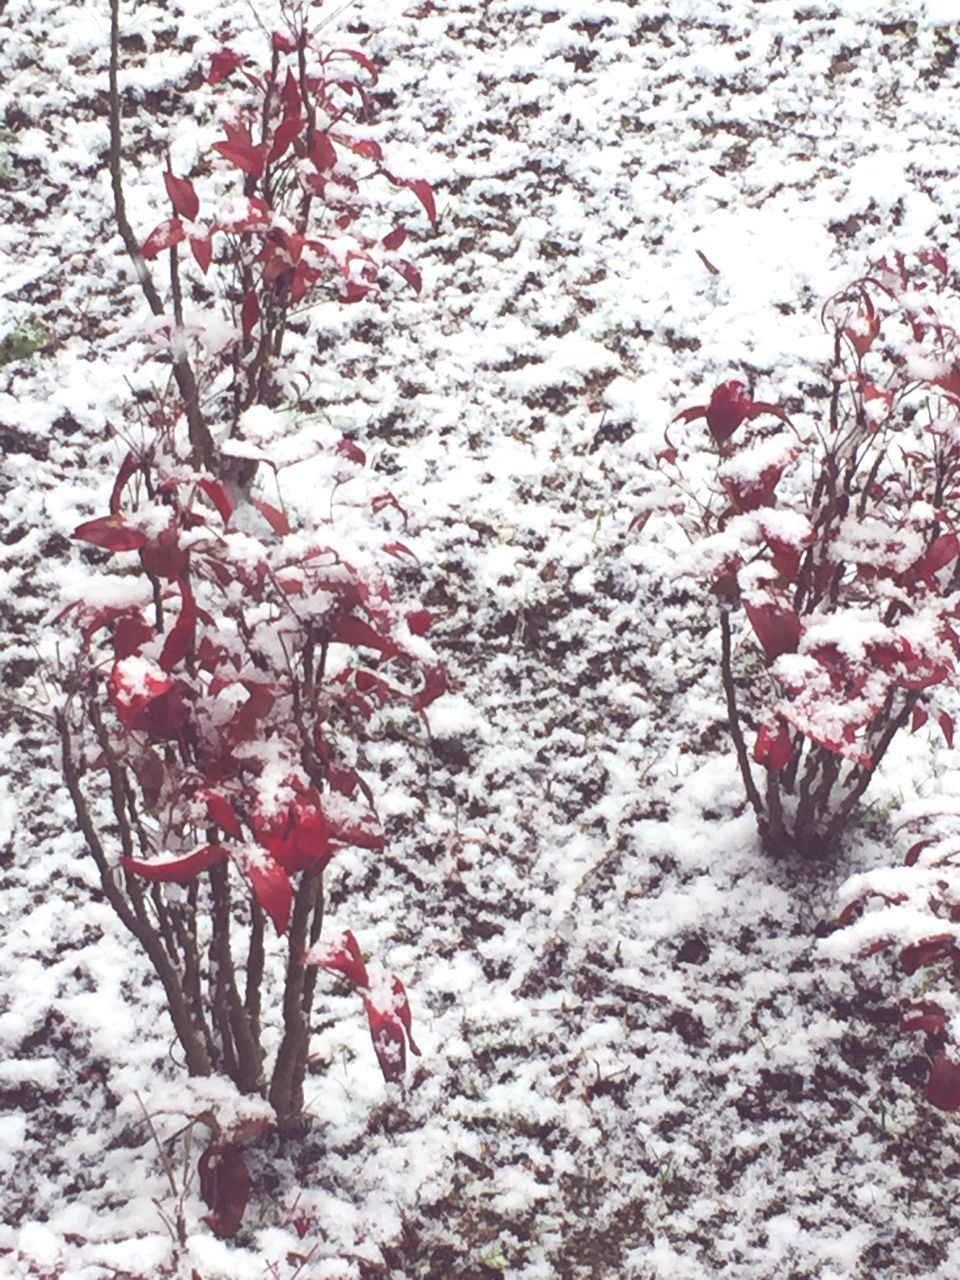 winter, snow, cold temperature, nature, weather, tree, beauty in nature, no people, outdoors, day, red, branch, frozen, tranquility, growth, close-up, freshness